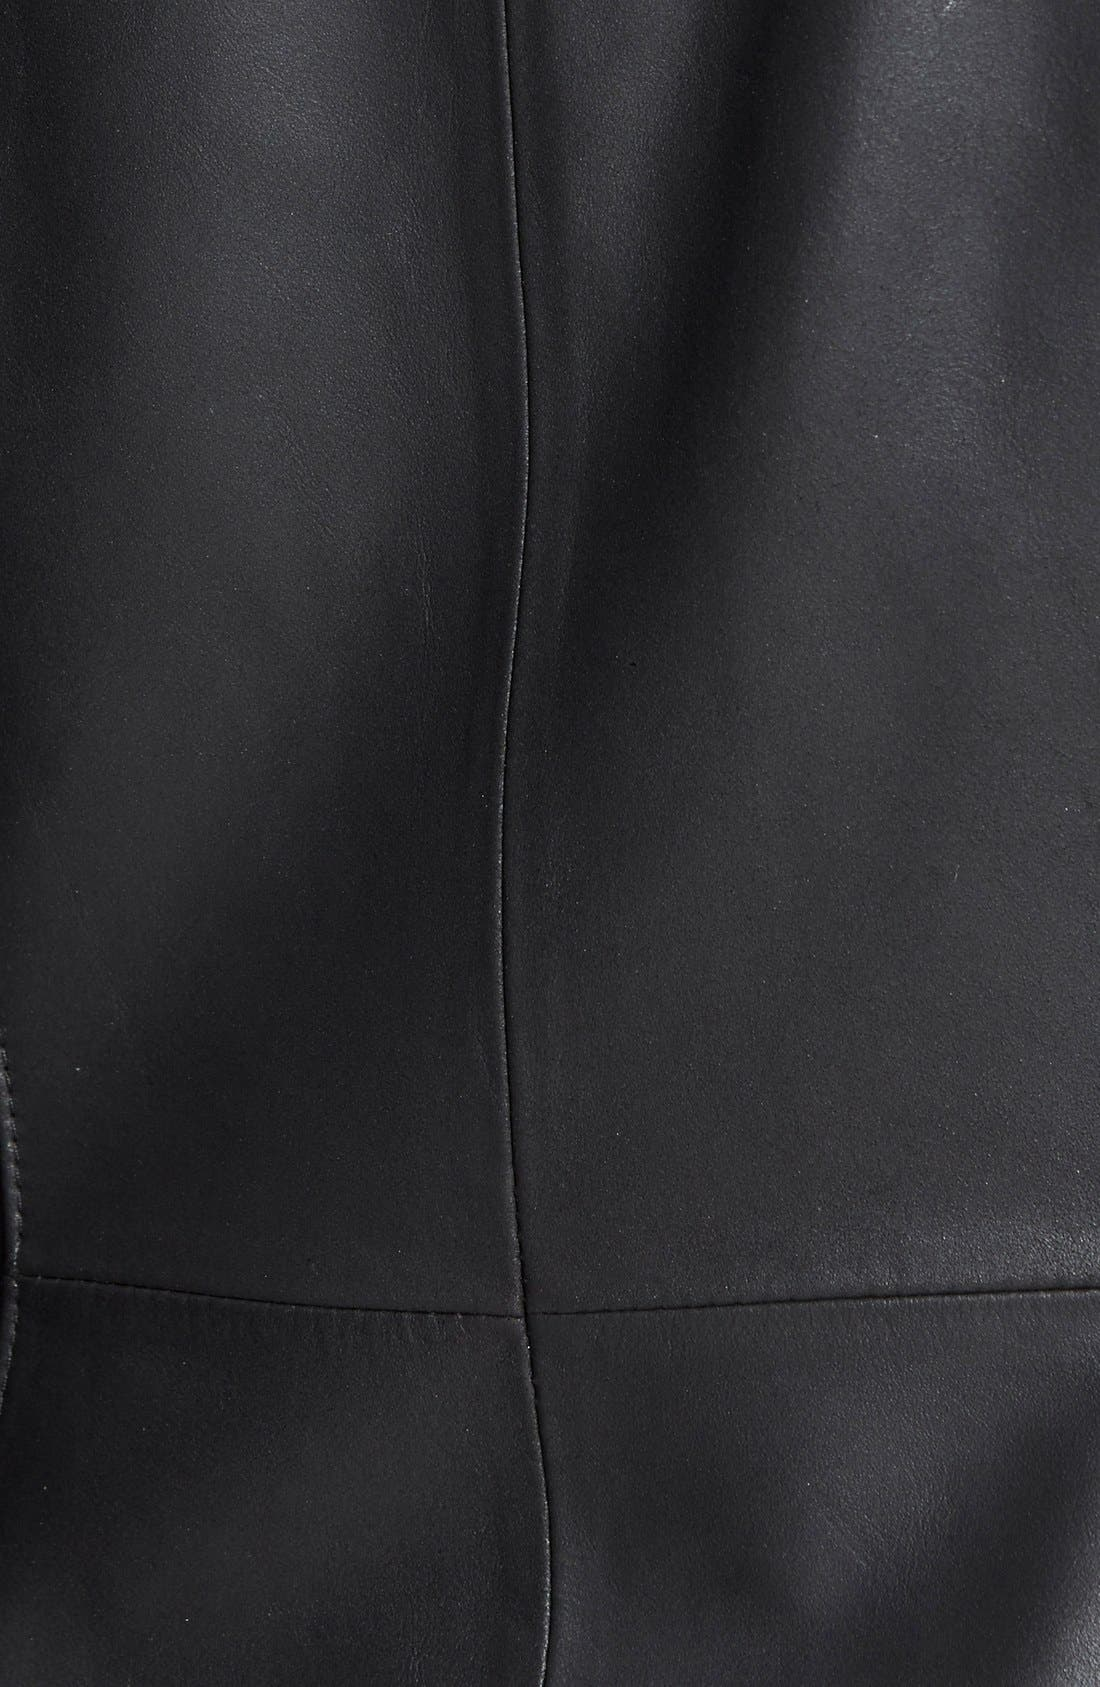 'Angelina' Zip Collar Leather Jacket,                             Alternate thumbnail 2, color,                             001